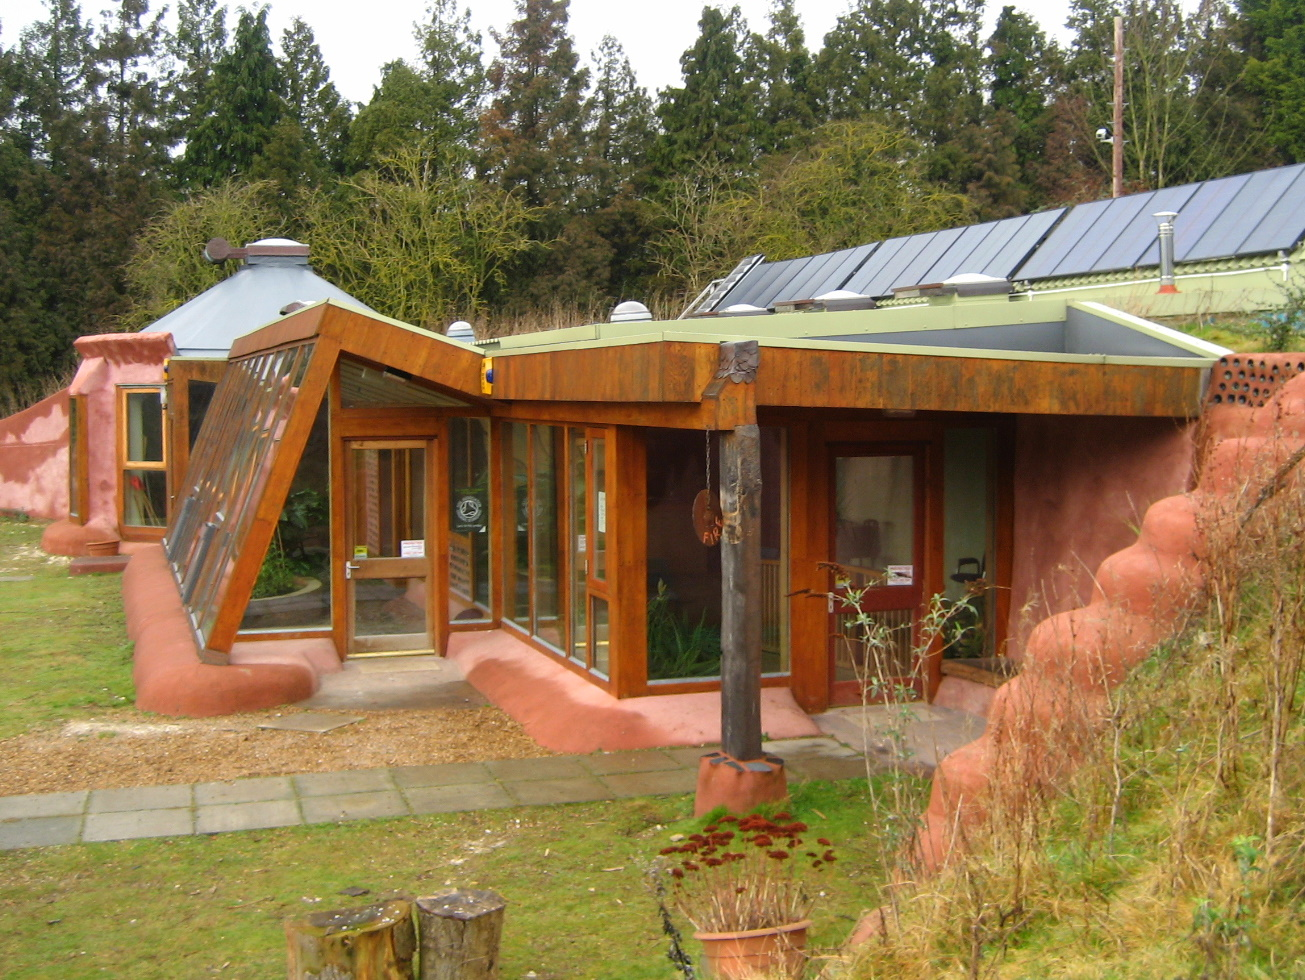 Earthship wikidwelling fandom powered by wikia for Off the grid home design plans